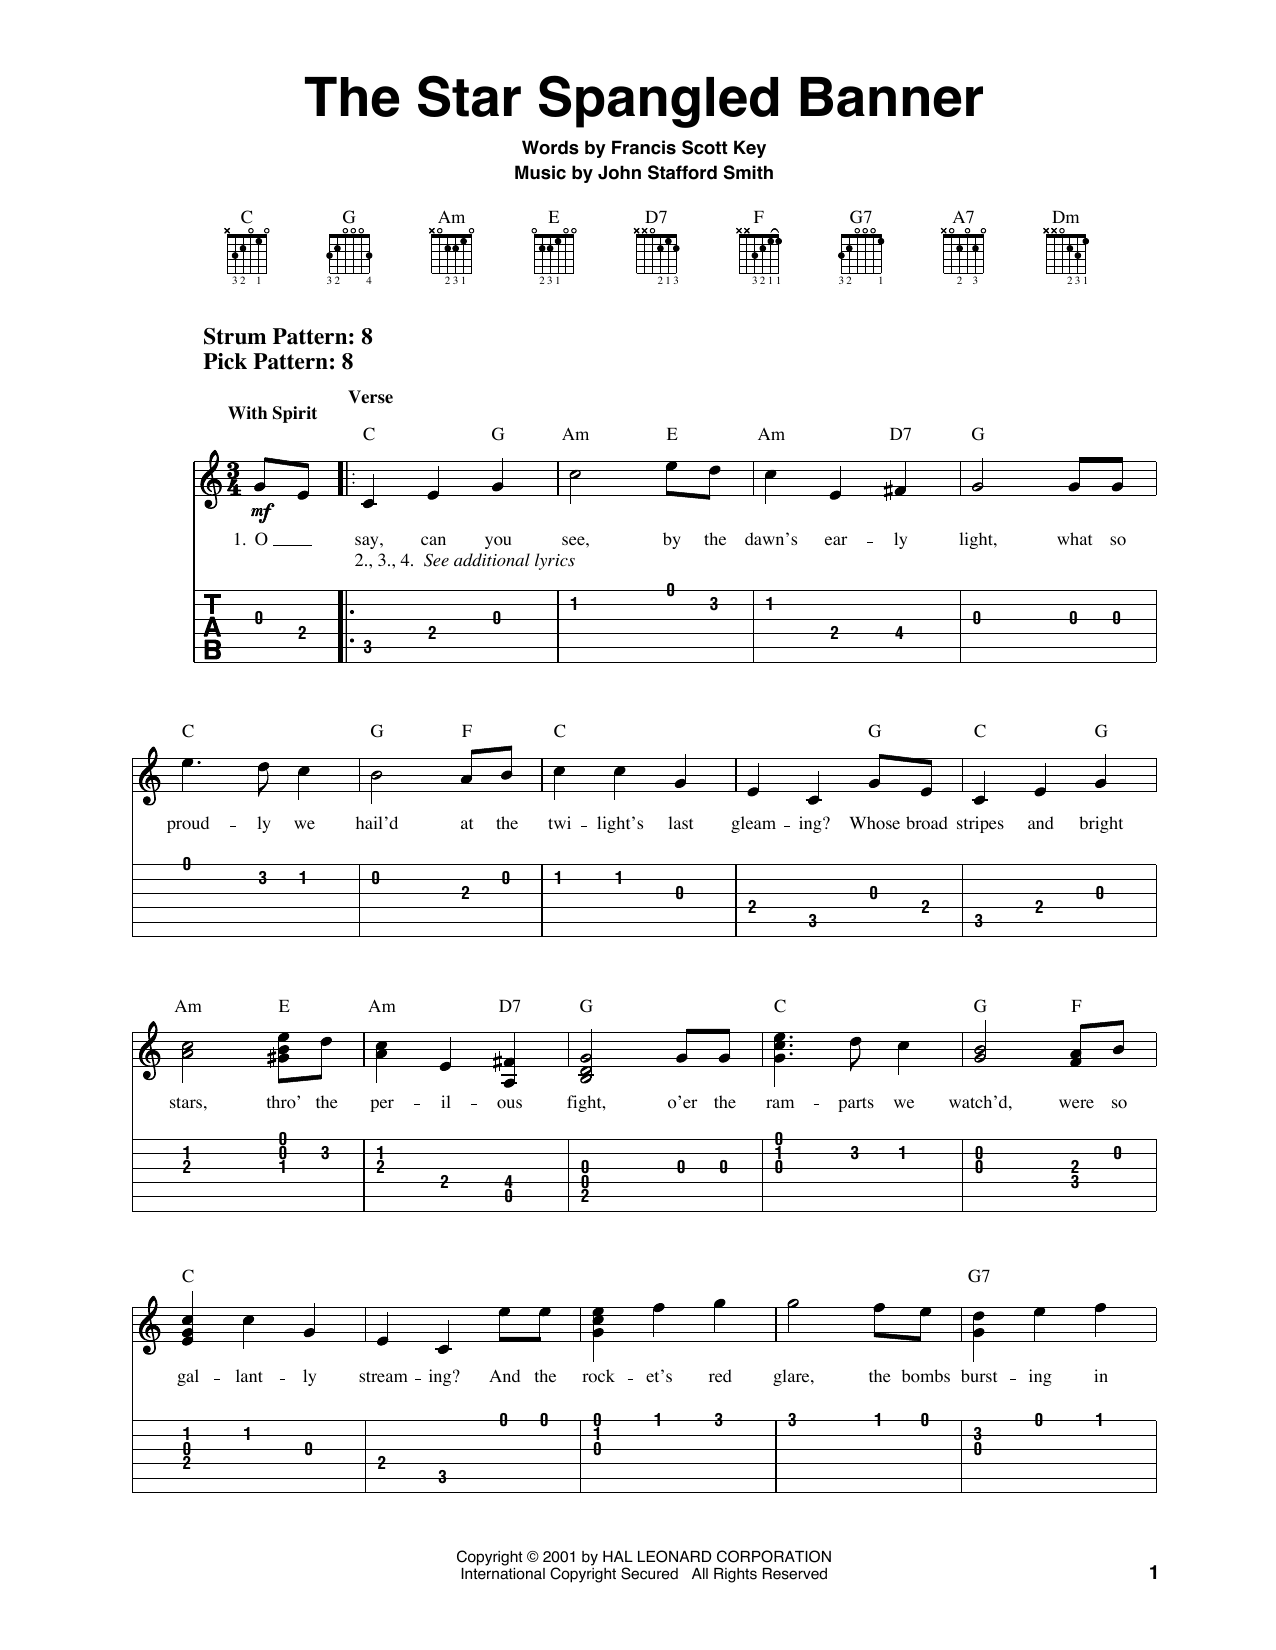 Francis Scott Key The Star Spangled Banner Sheet Music Pdf Notes Chords Patriotic Score Piano Solo Download Printable Sku 23716